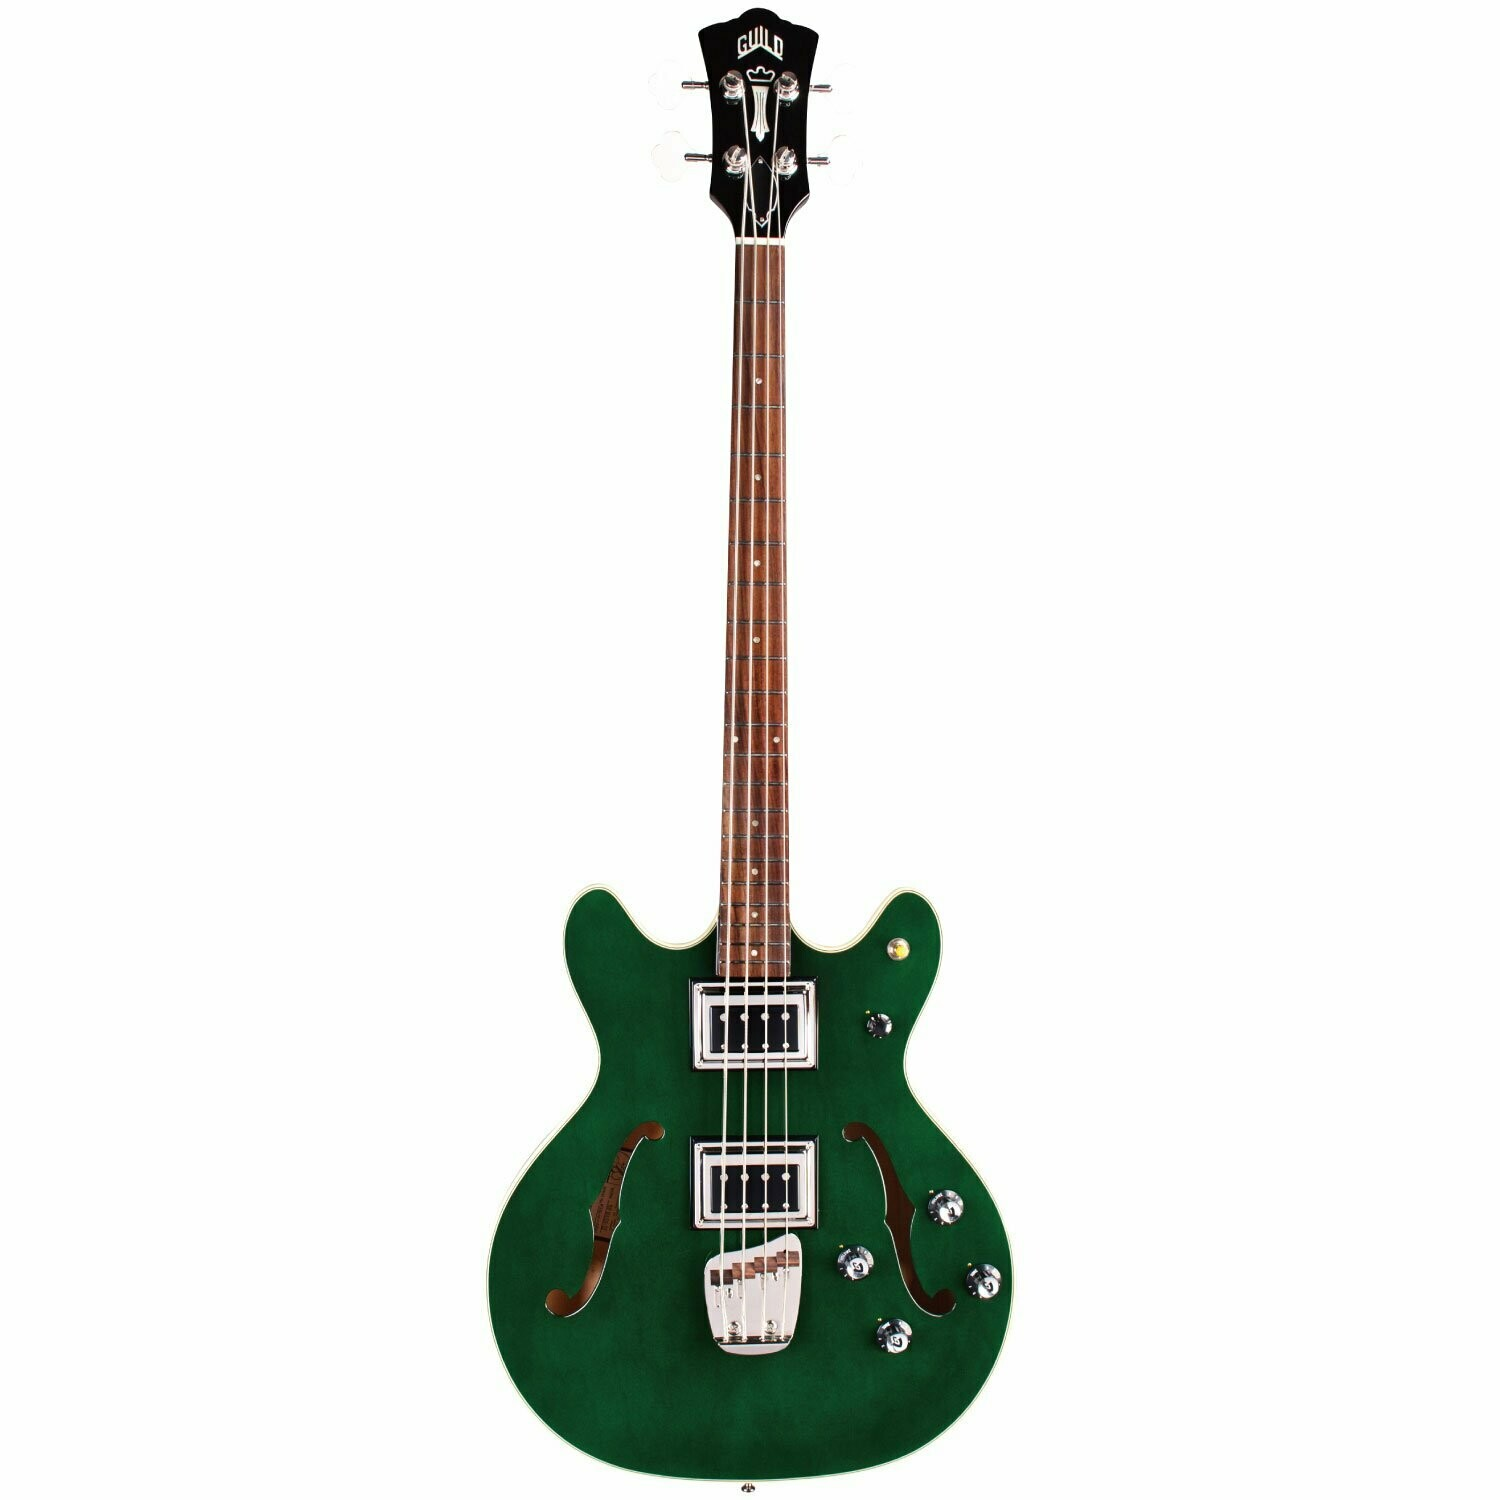 Guild Starfire II Bass - Emerald Green - Semi-Hollow Body - Dual Pickup Electric Bass Guitar